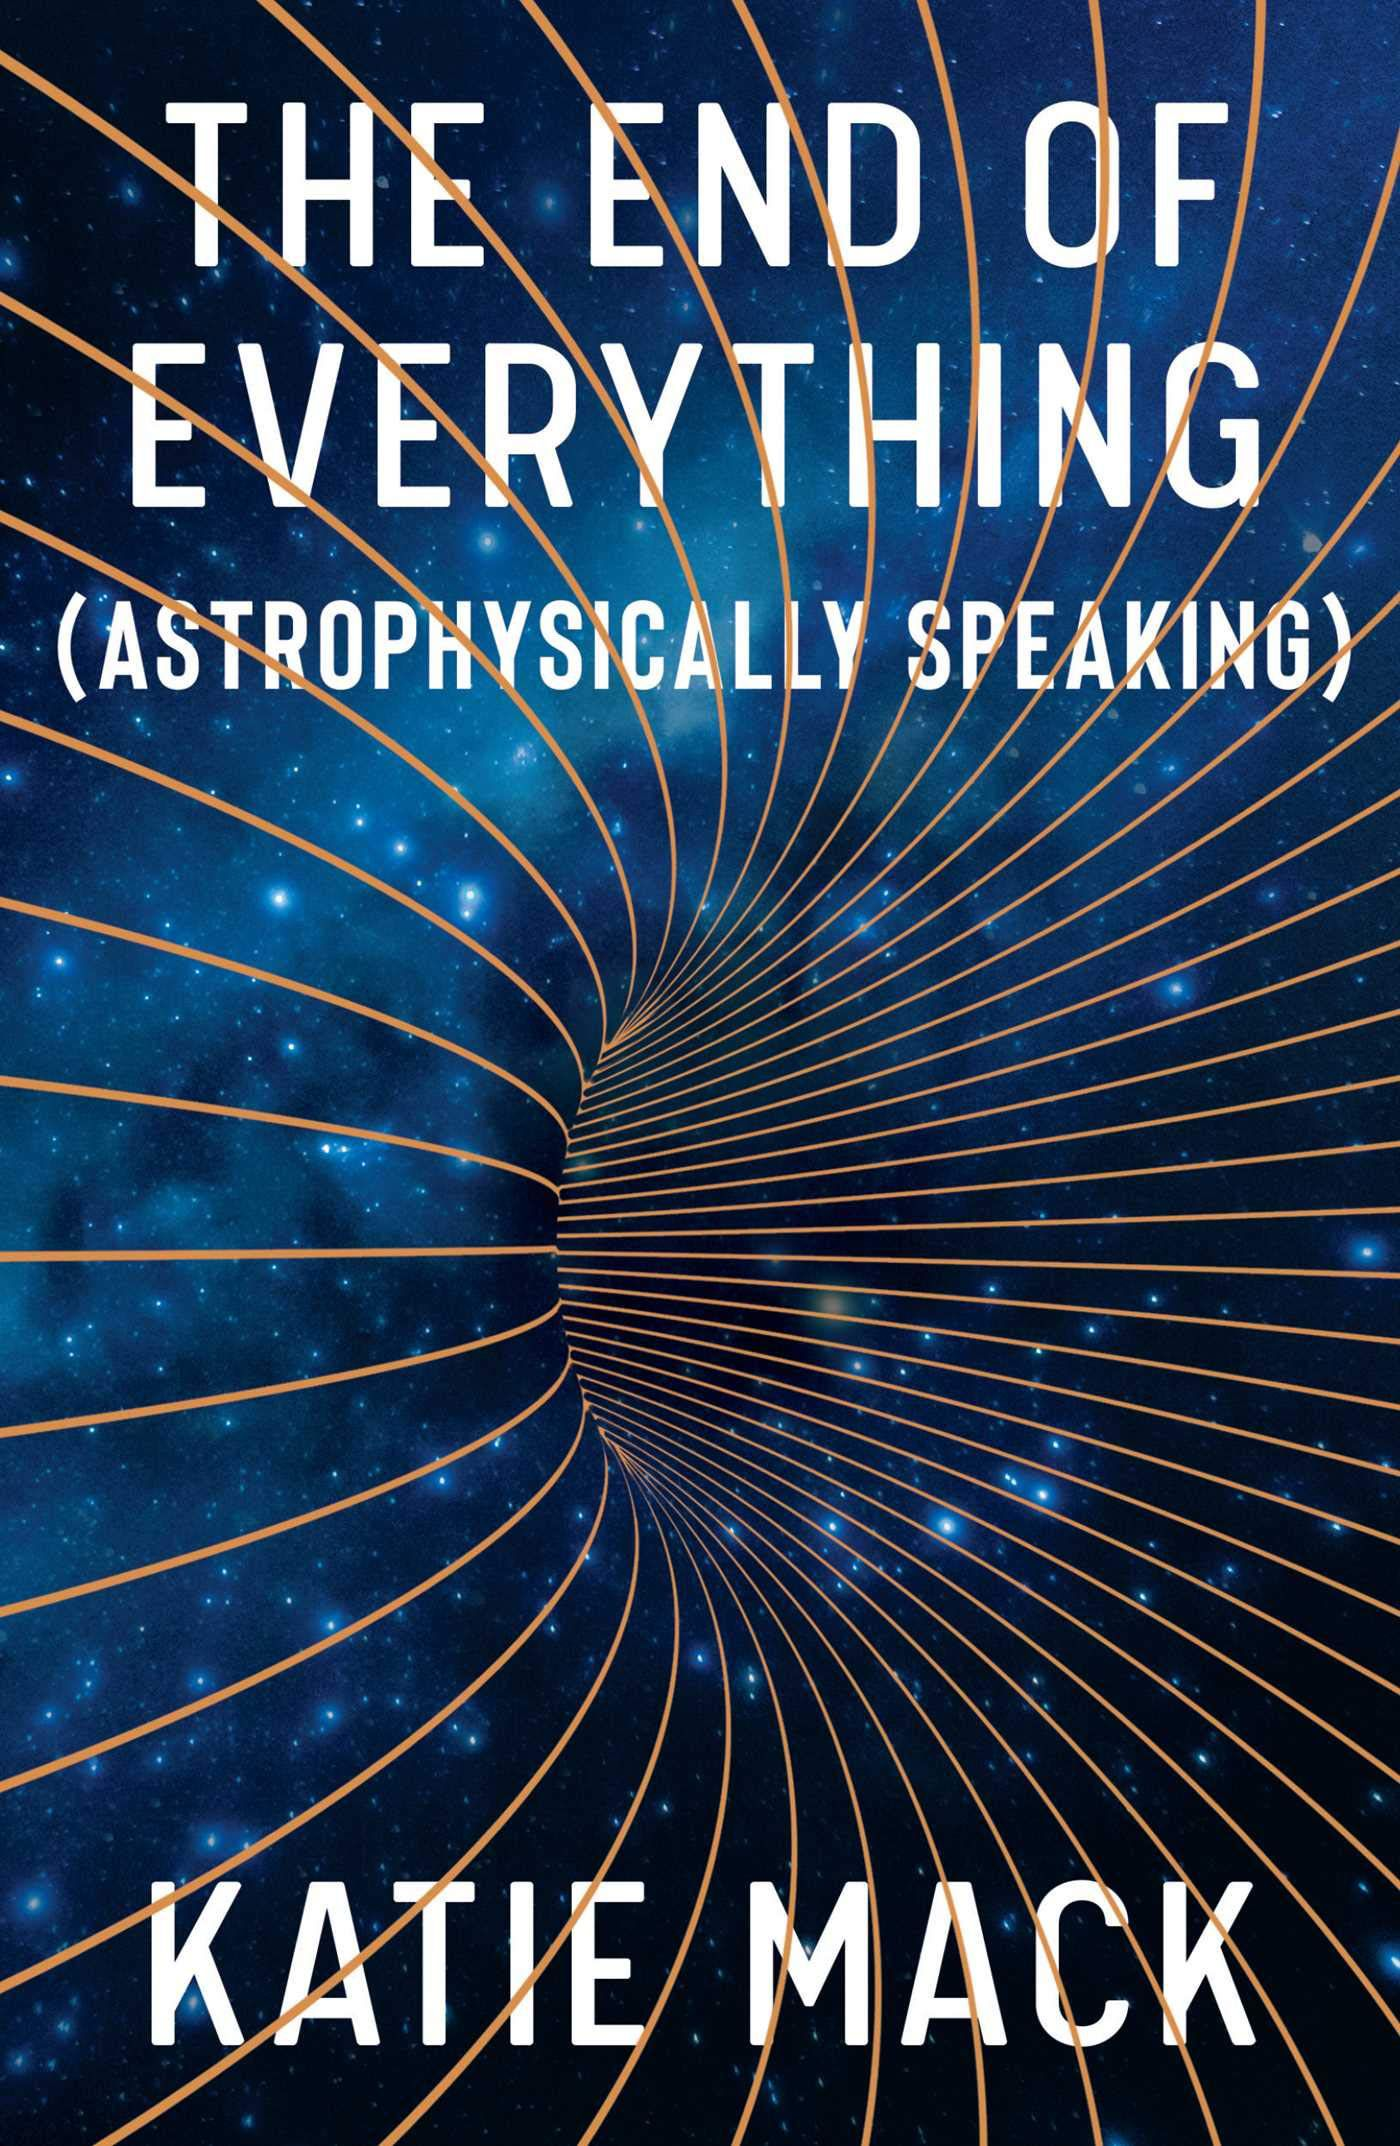 the end of everything (astrologically speaking) book cover